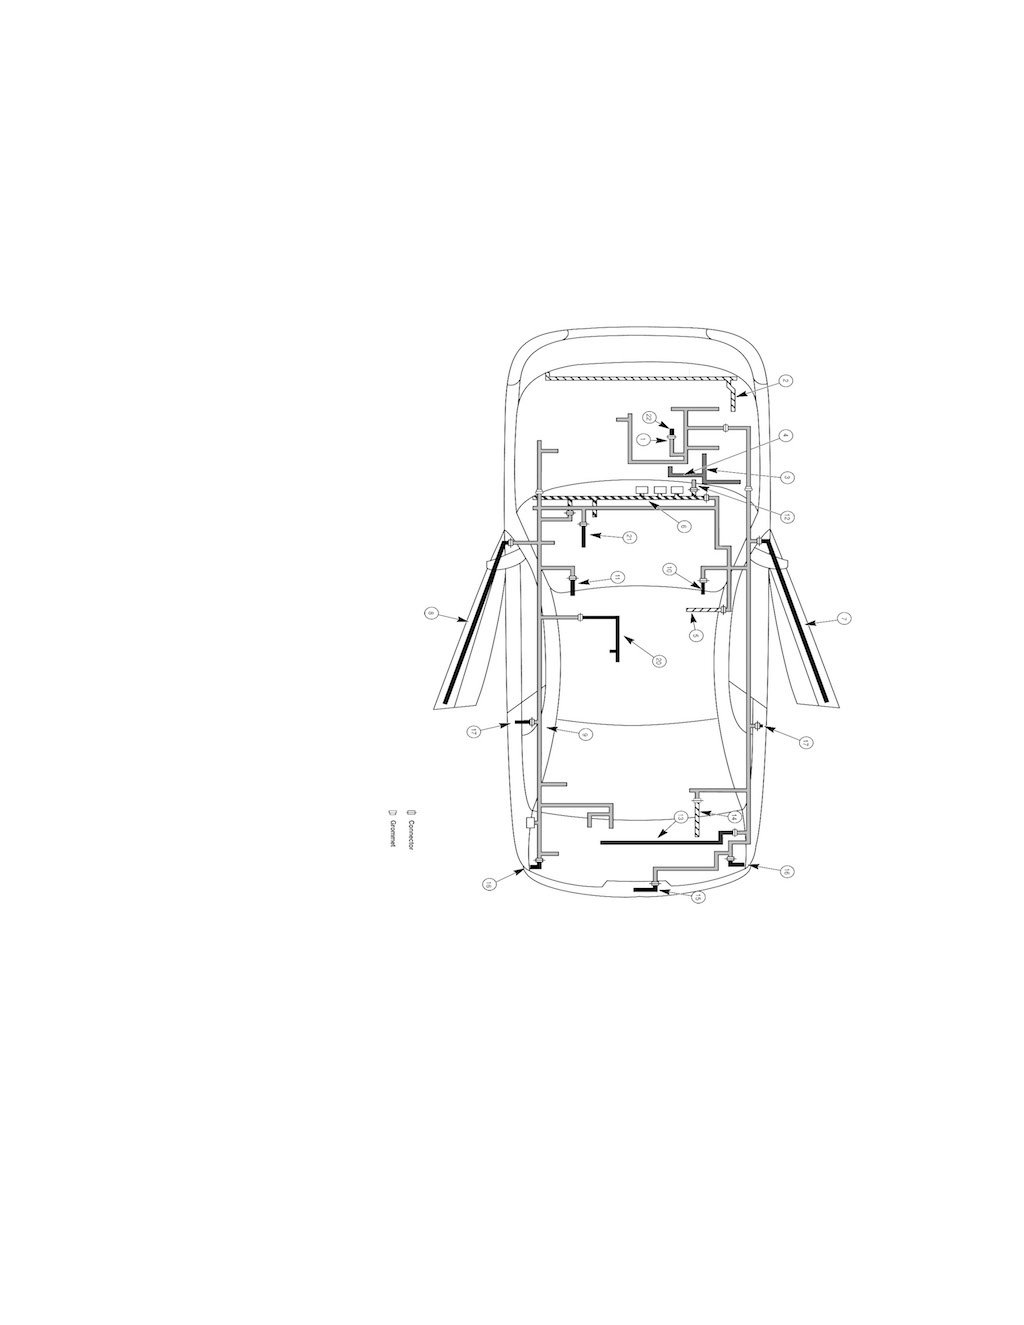 FREE 2005-2010 Ford Mustang, OEM Electrical Wiring Dia